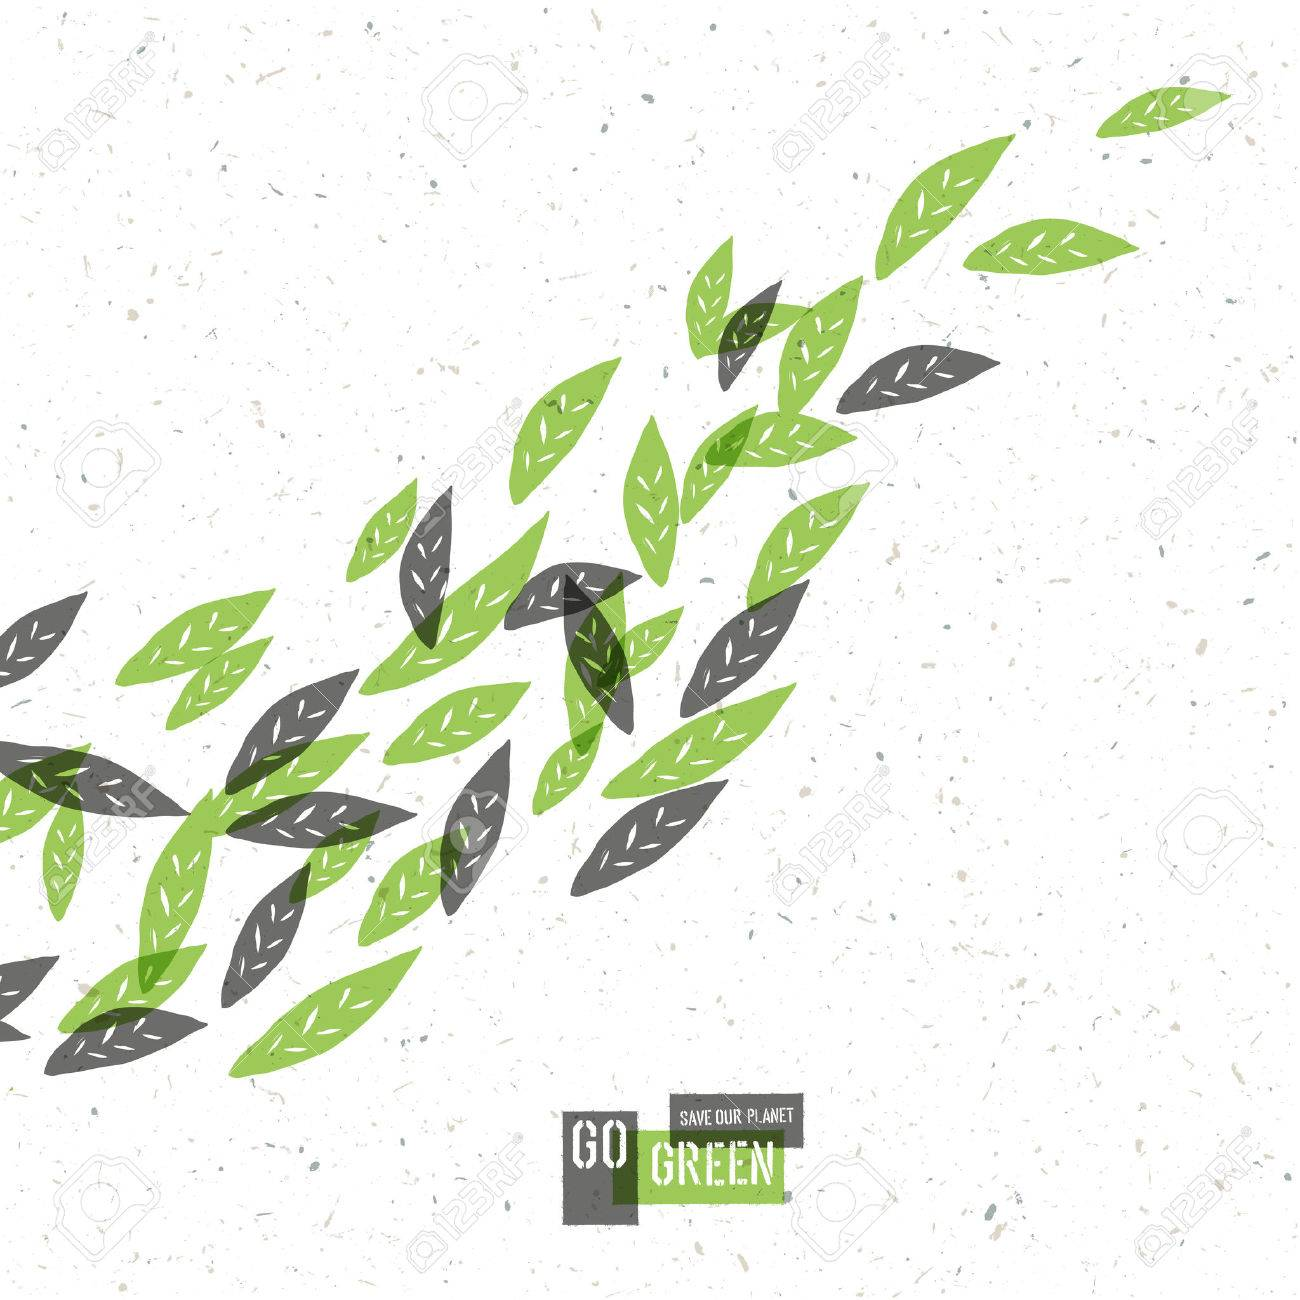 Go Green Concept Poster With Leaves. Vector - 33733528